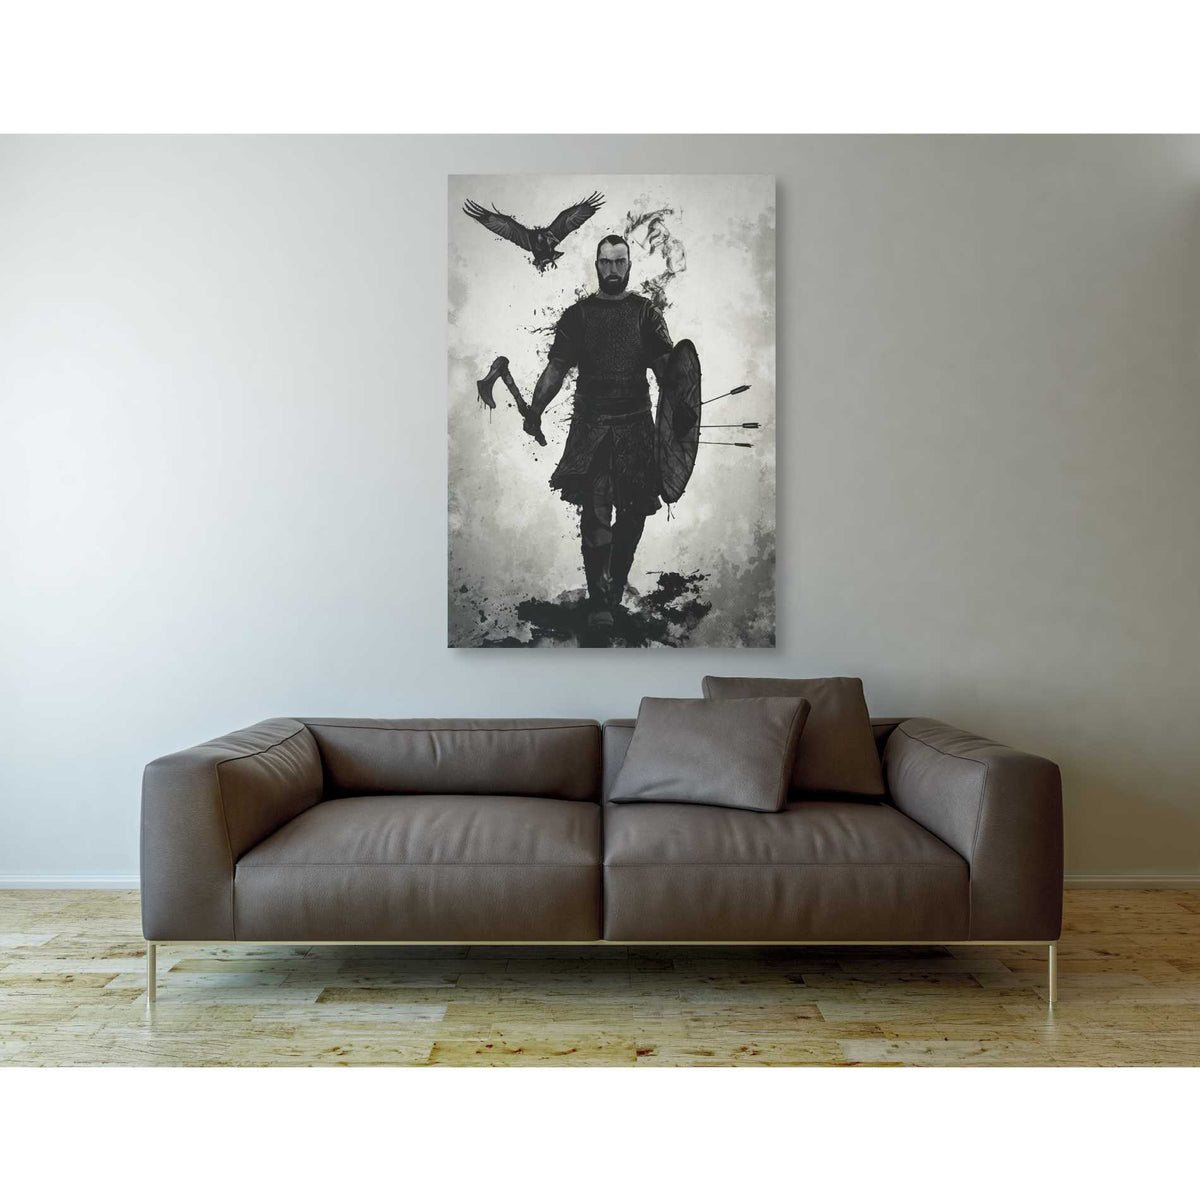 Cortesi Home 'To Valhalla' by Nicklas Gustafsson, Canvas Wall Art,40 x 60